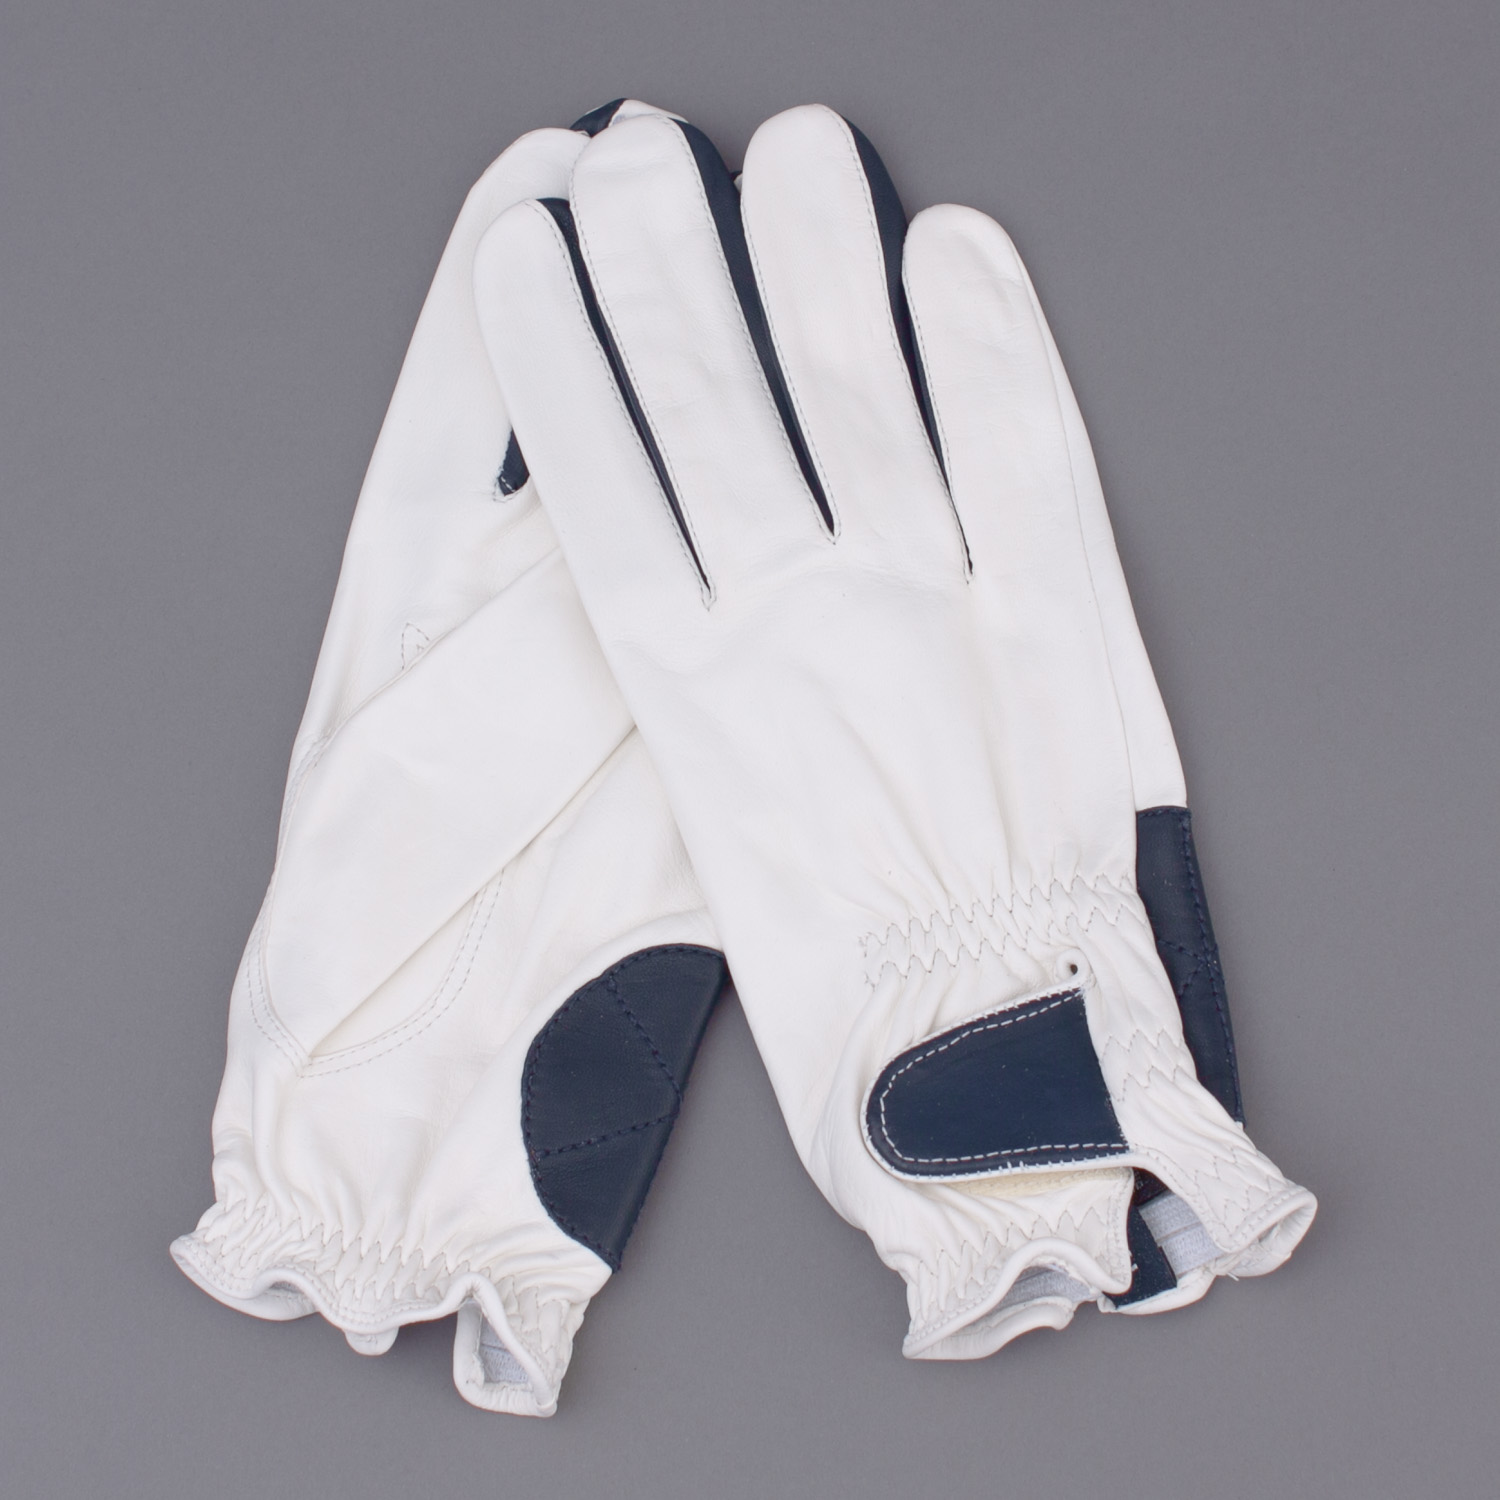 Merola Golf Glove